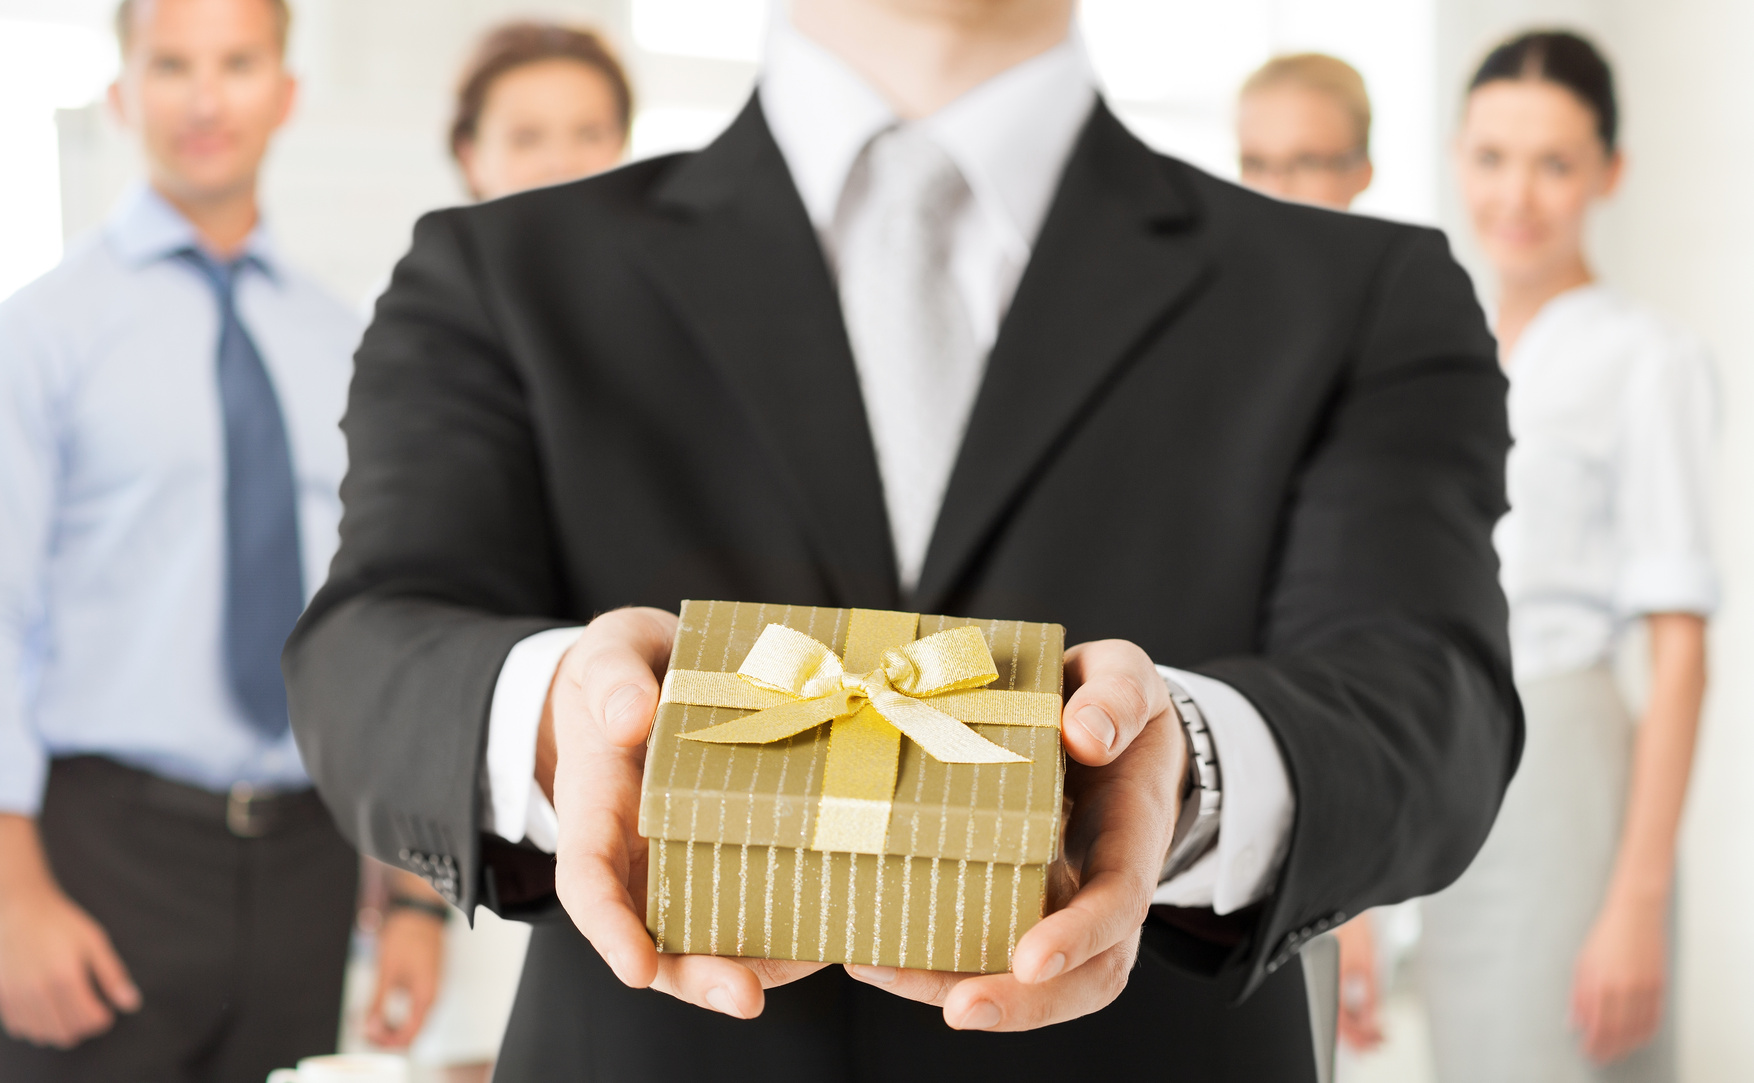 Get your boss a gift that they'll remember